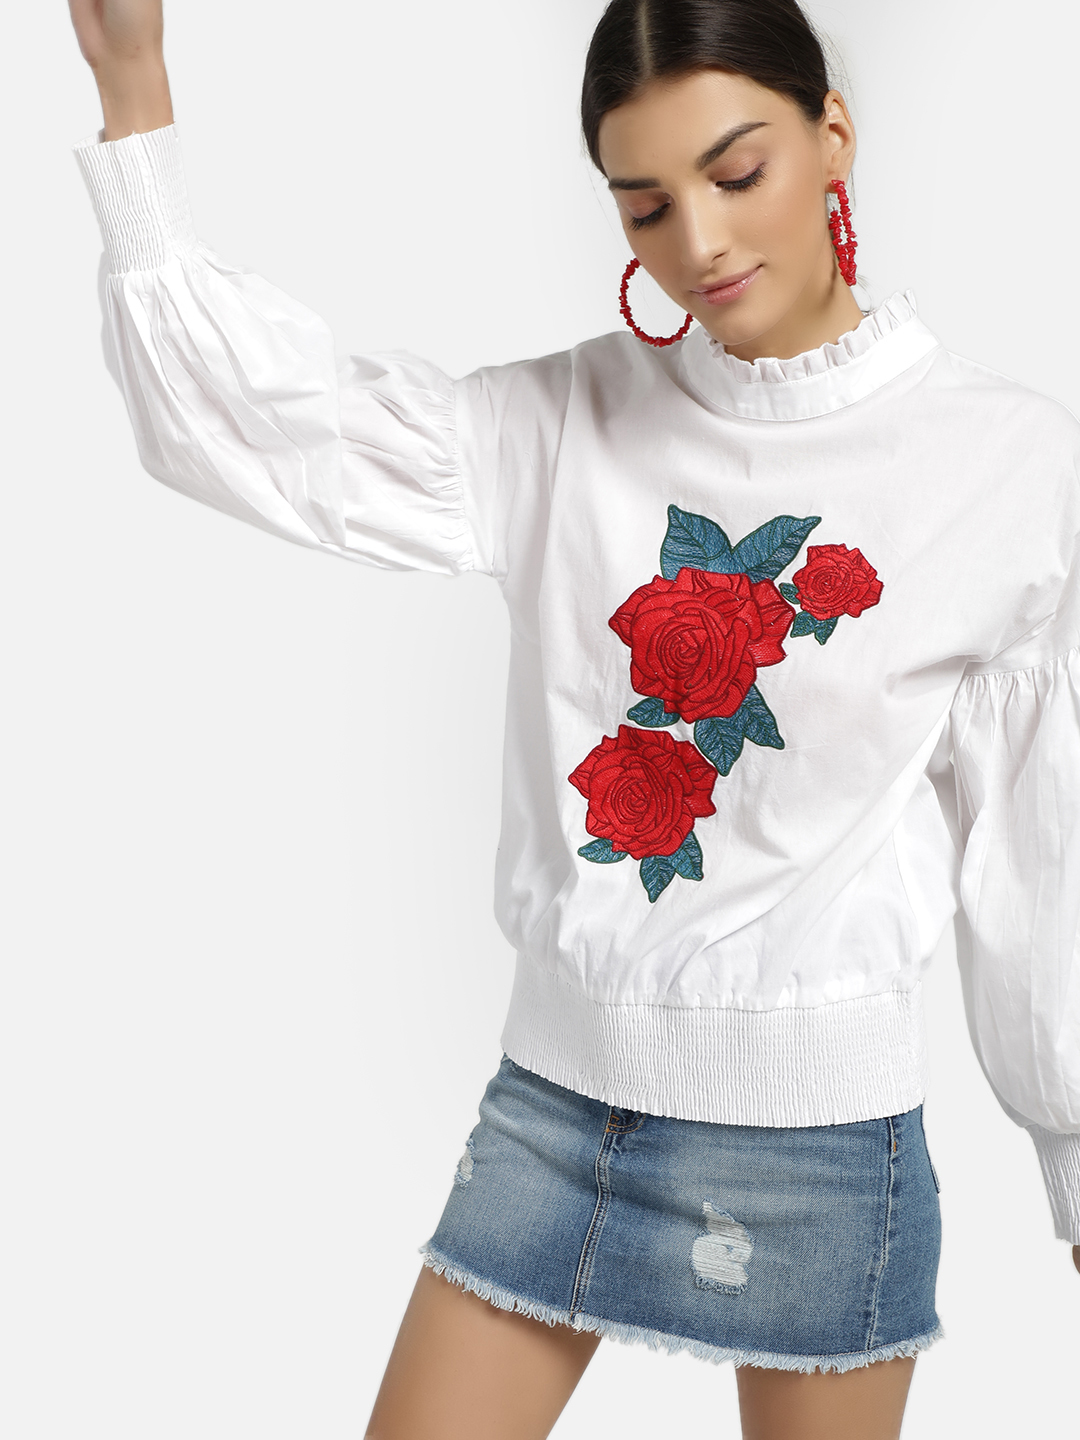 Rena Love White Floral Embroidered Ruffle Neck Blouse 1